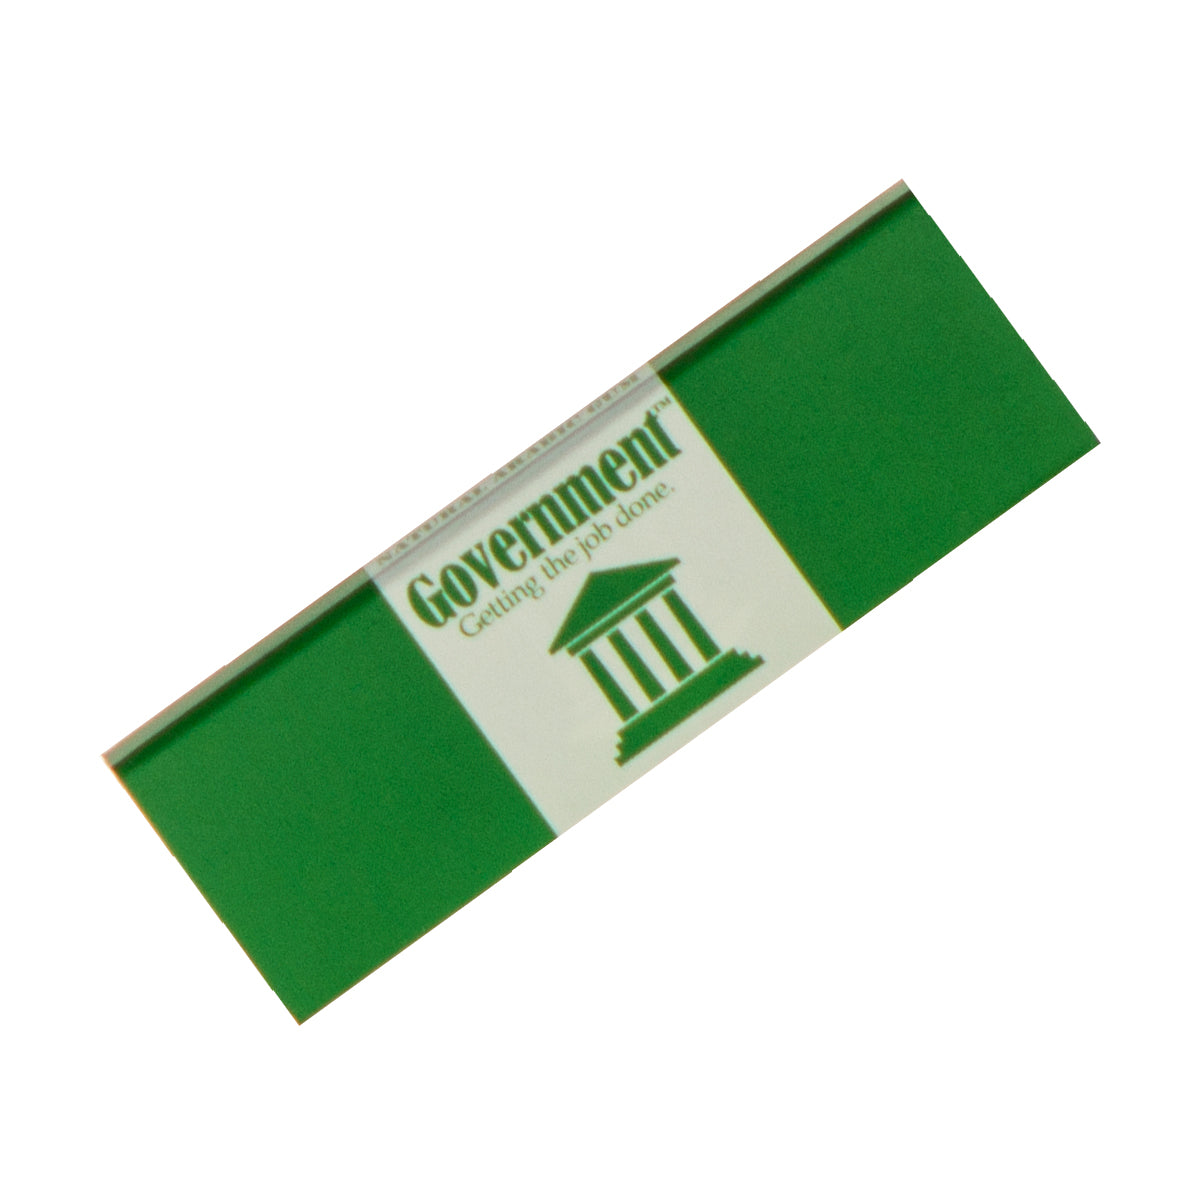 Government Rolling papers